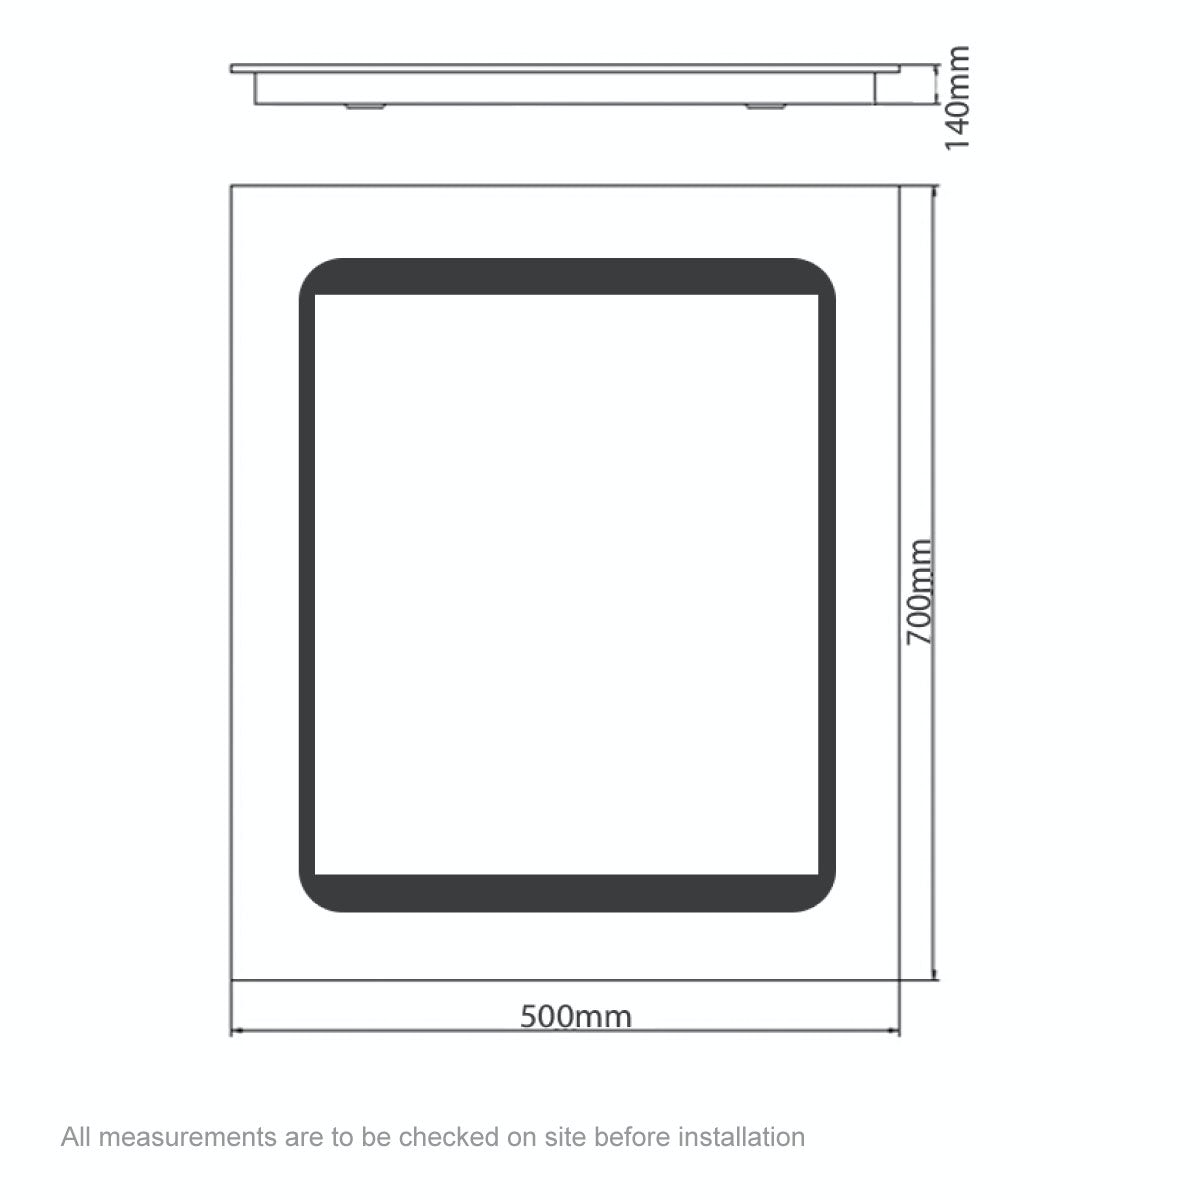 Dimensions for Mode Novus LED dual lit mirror cabinet